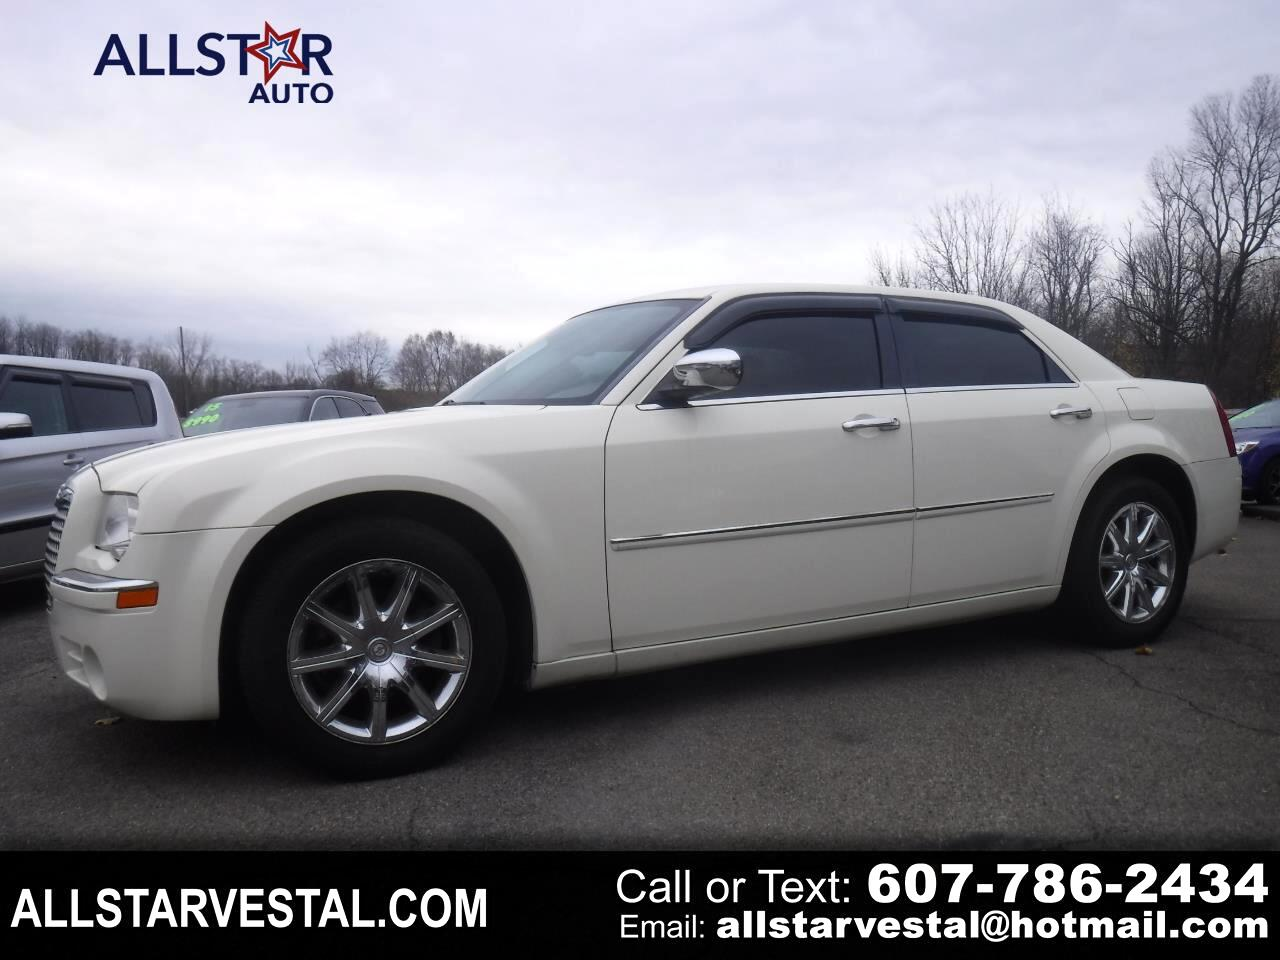 Chrysler 300 4dr Sdn Limited RWD 2009